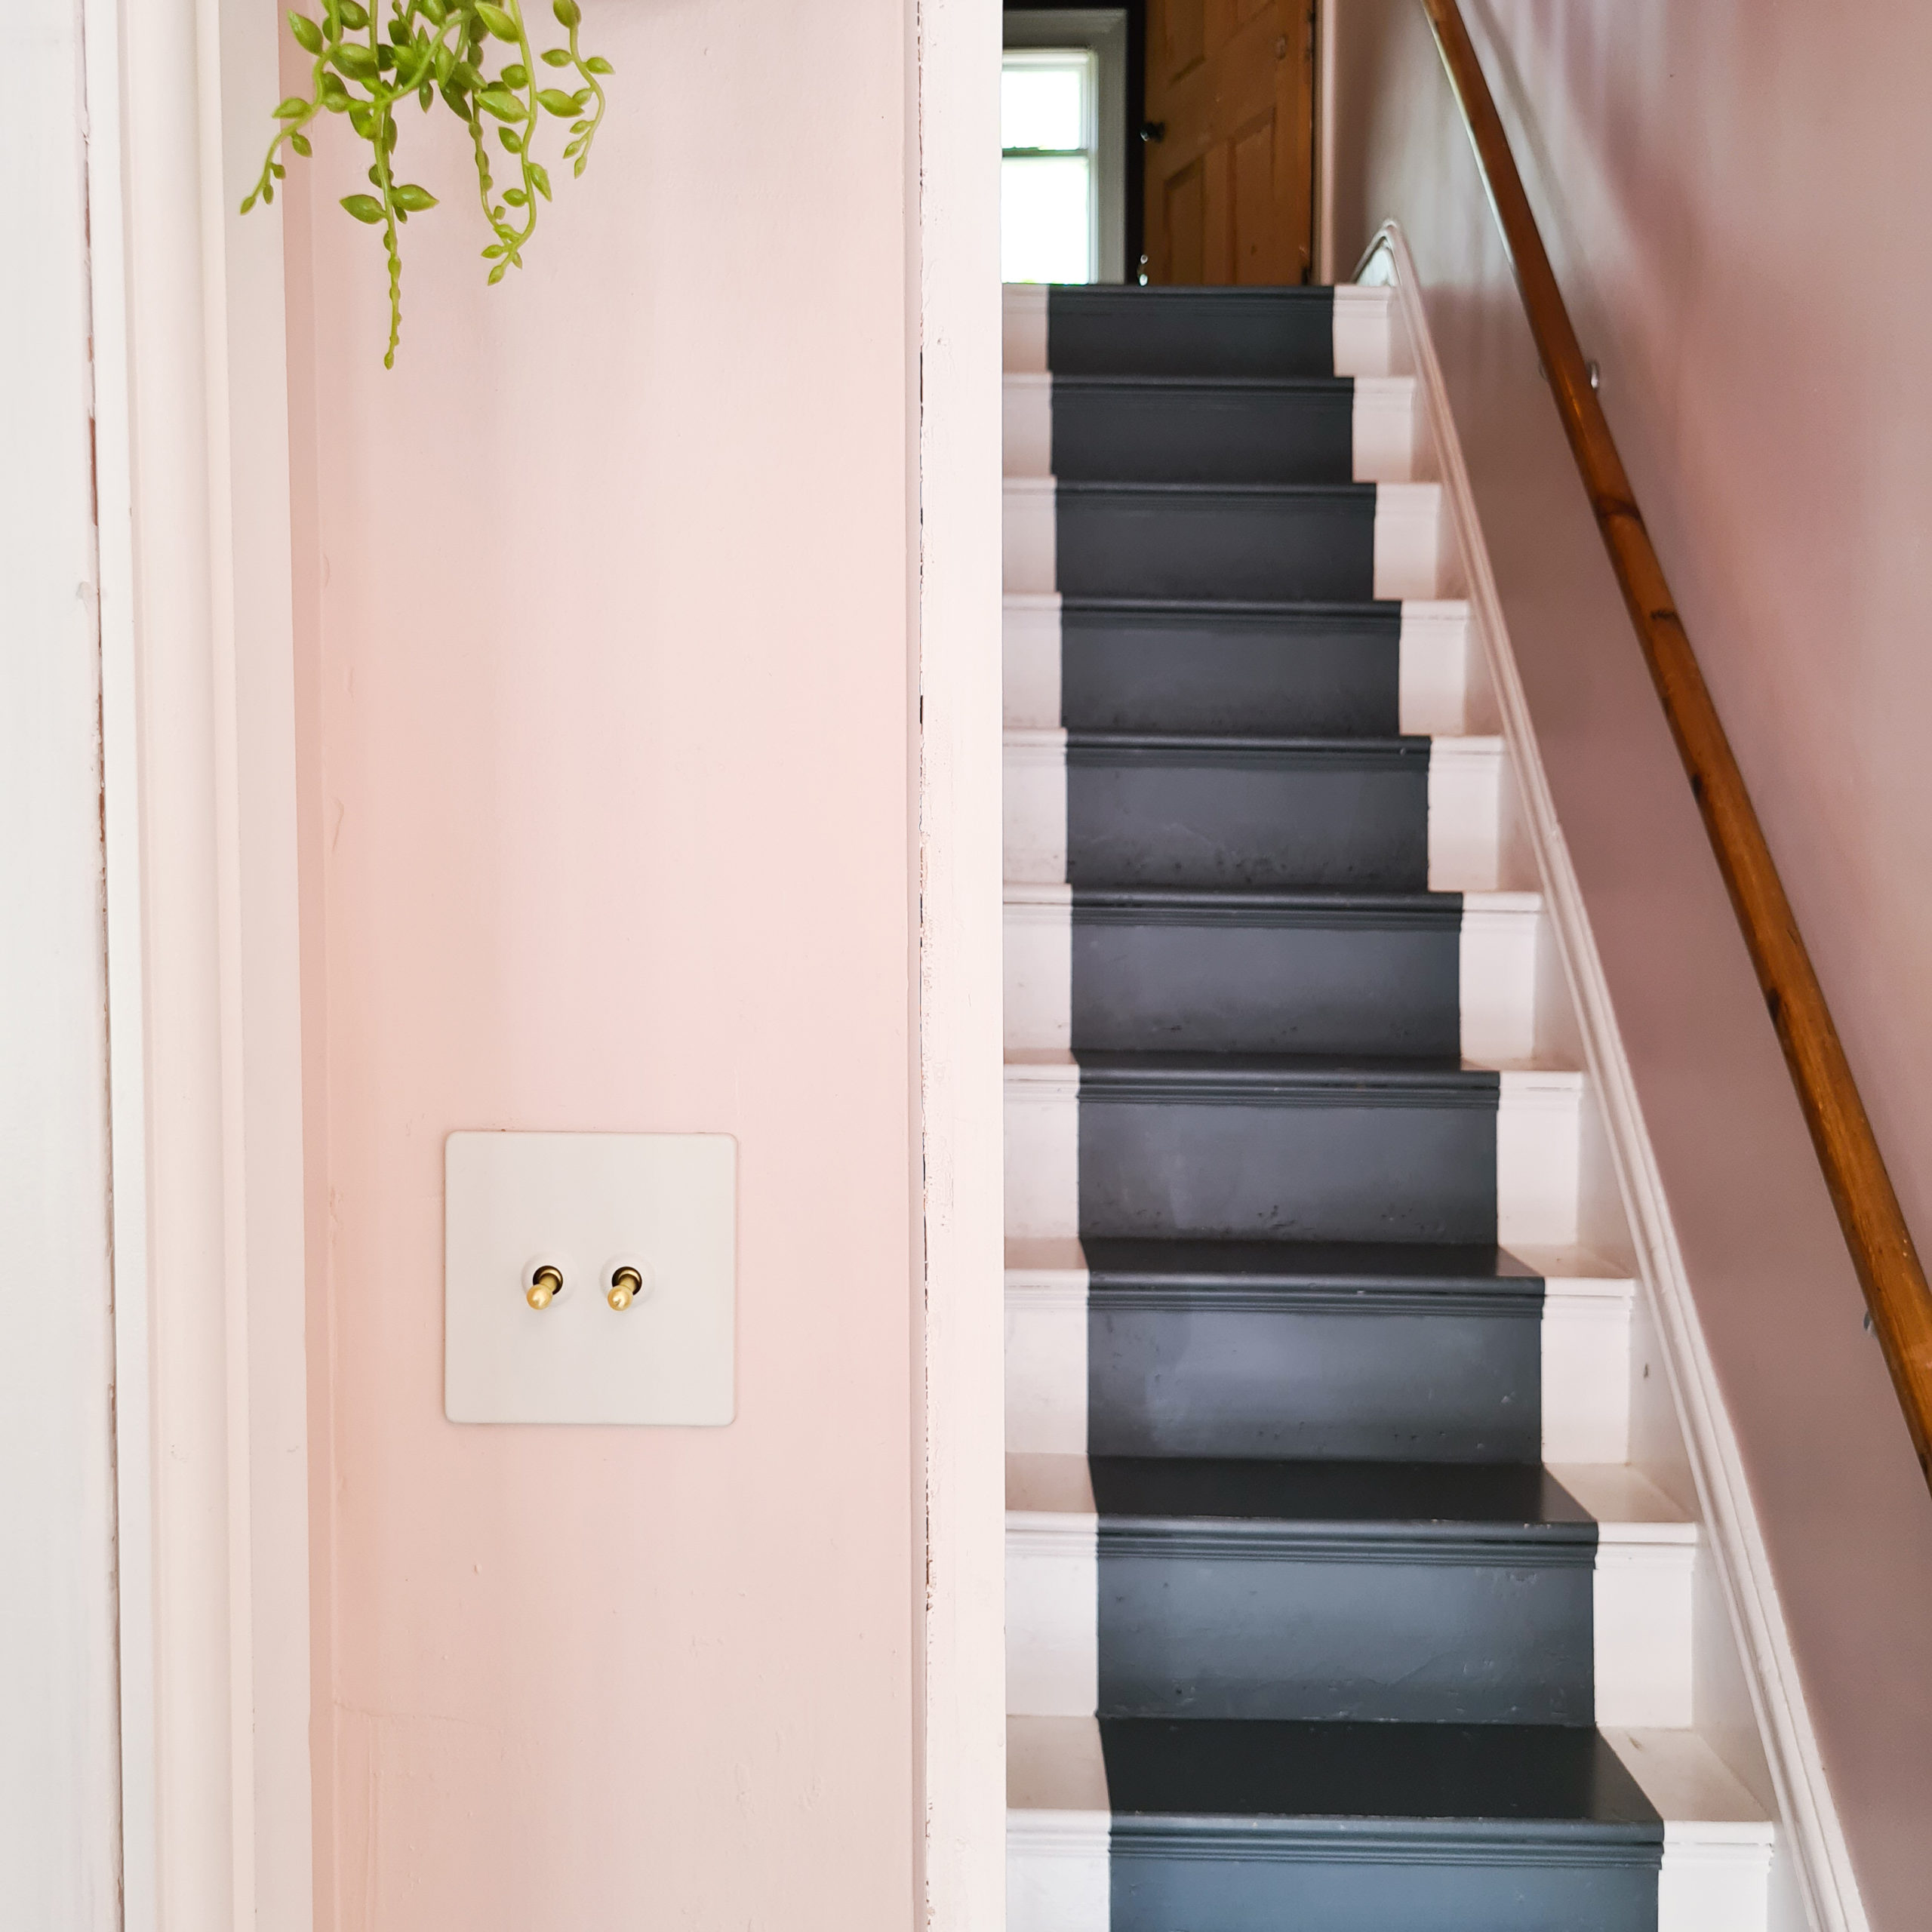 white and gold double toggle switch on soft pink wall in a hallway besides a flight of dark grey and white painted wooden stairs